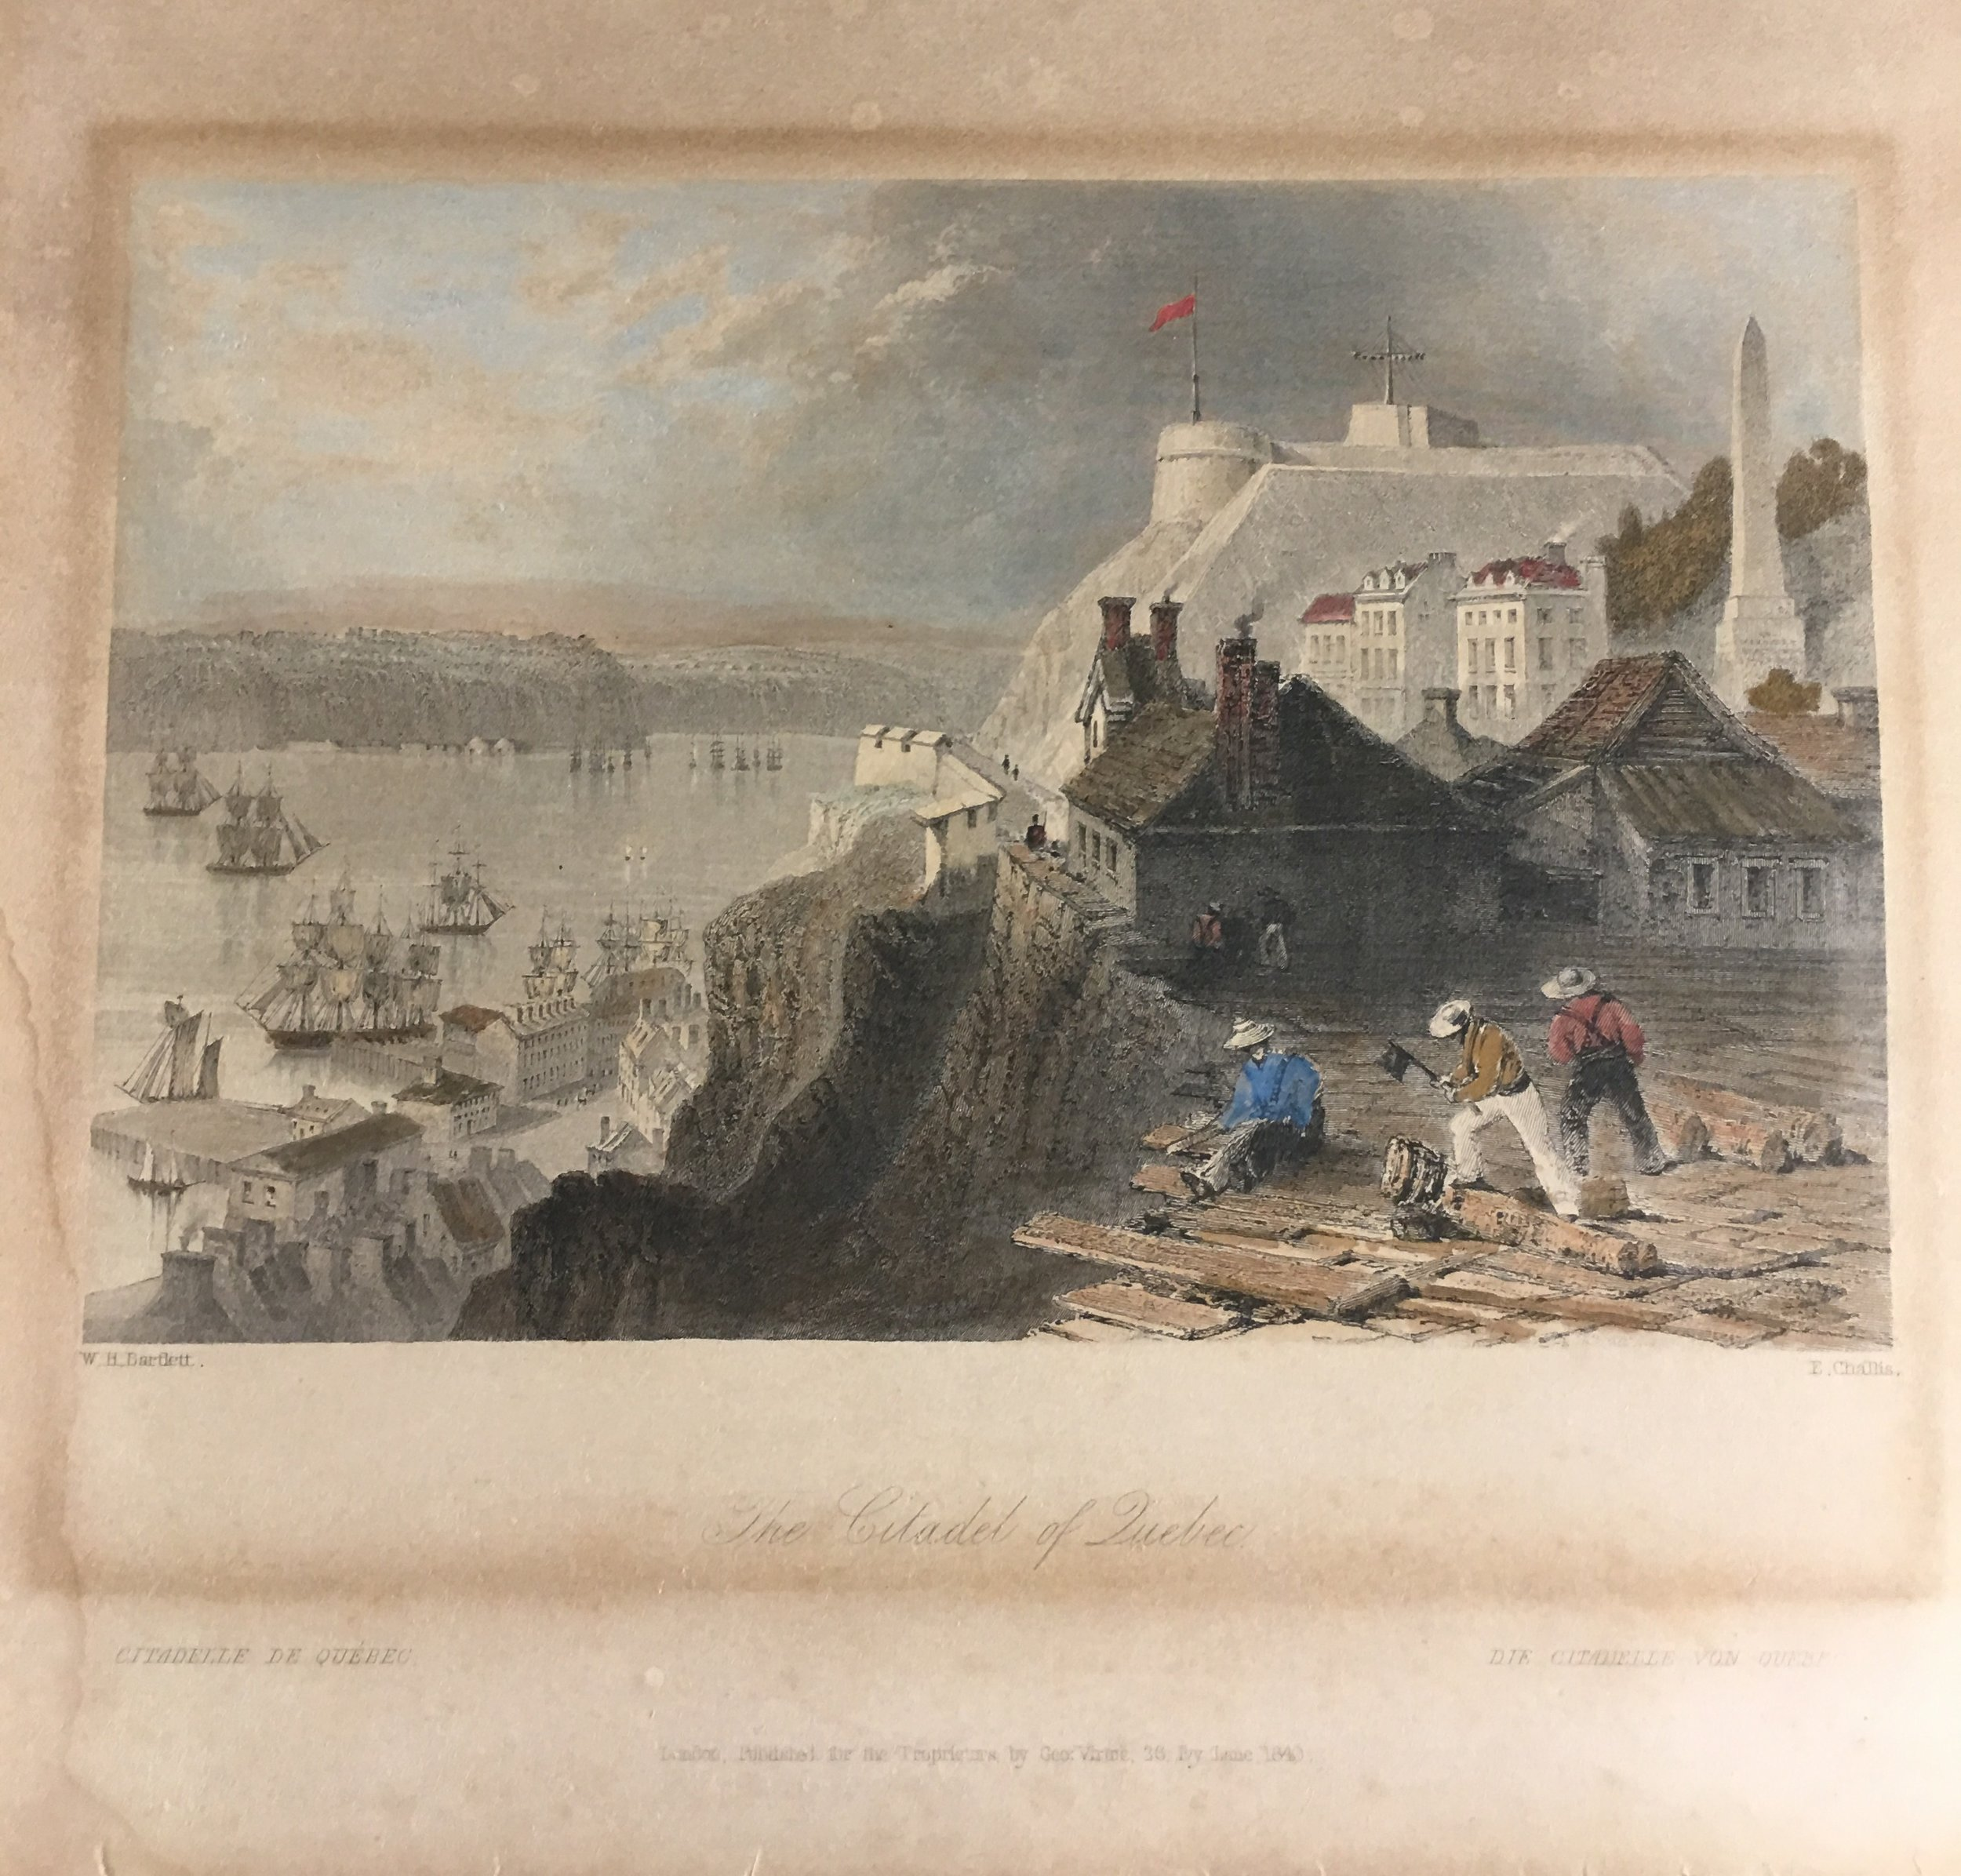 W.H. Bartlett Hand Colored Etching Citadel of Quebec Canada Published 1840